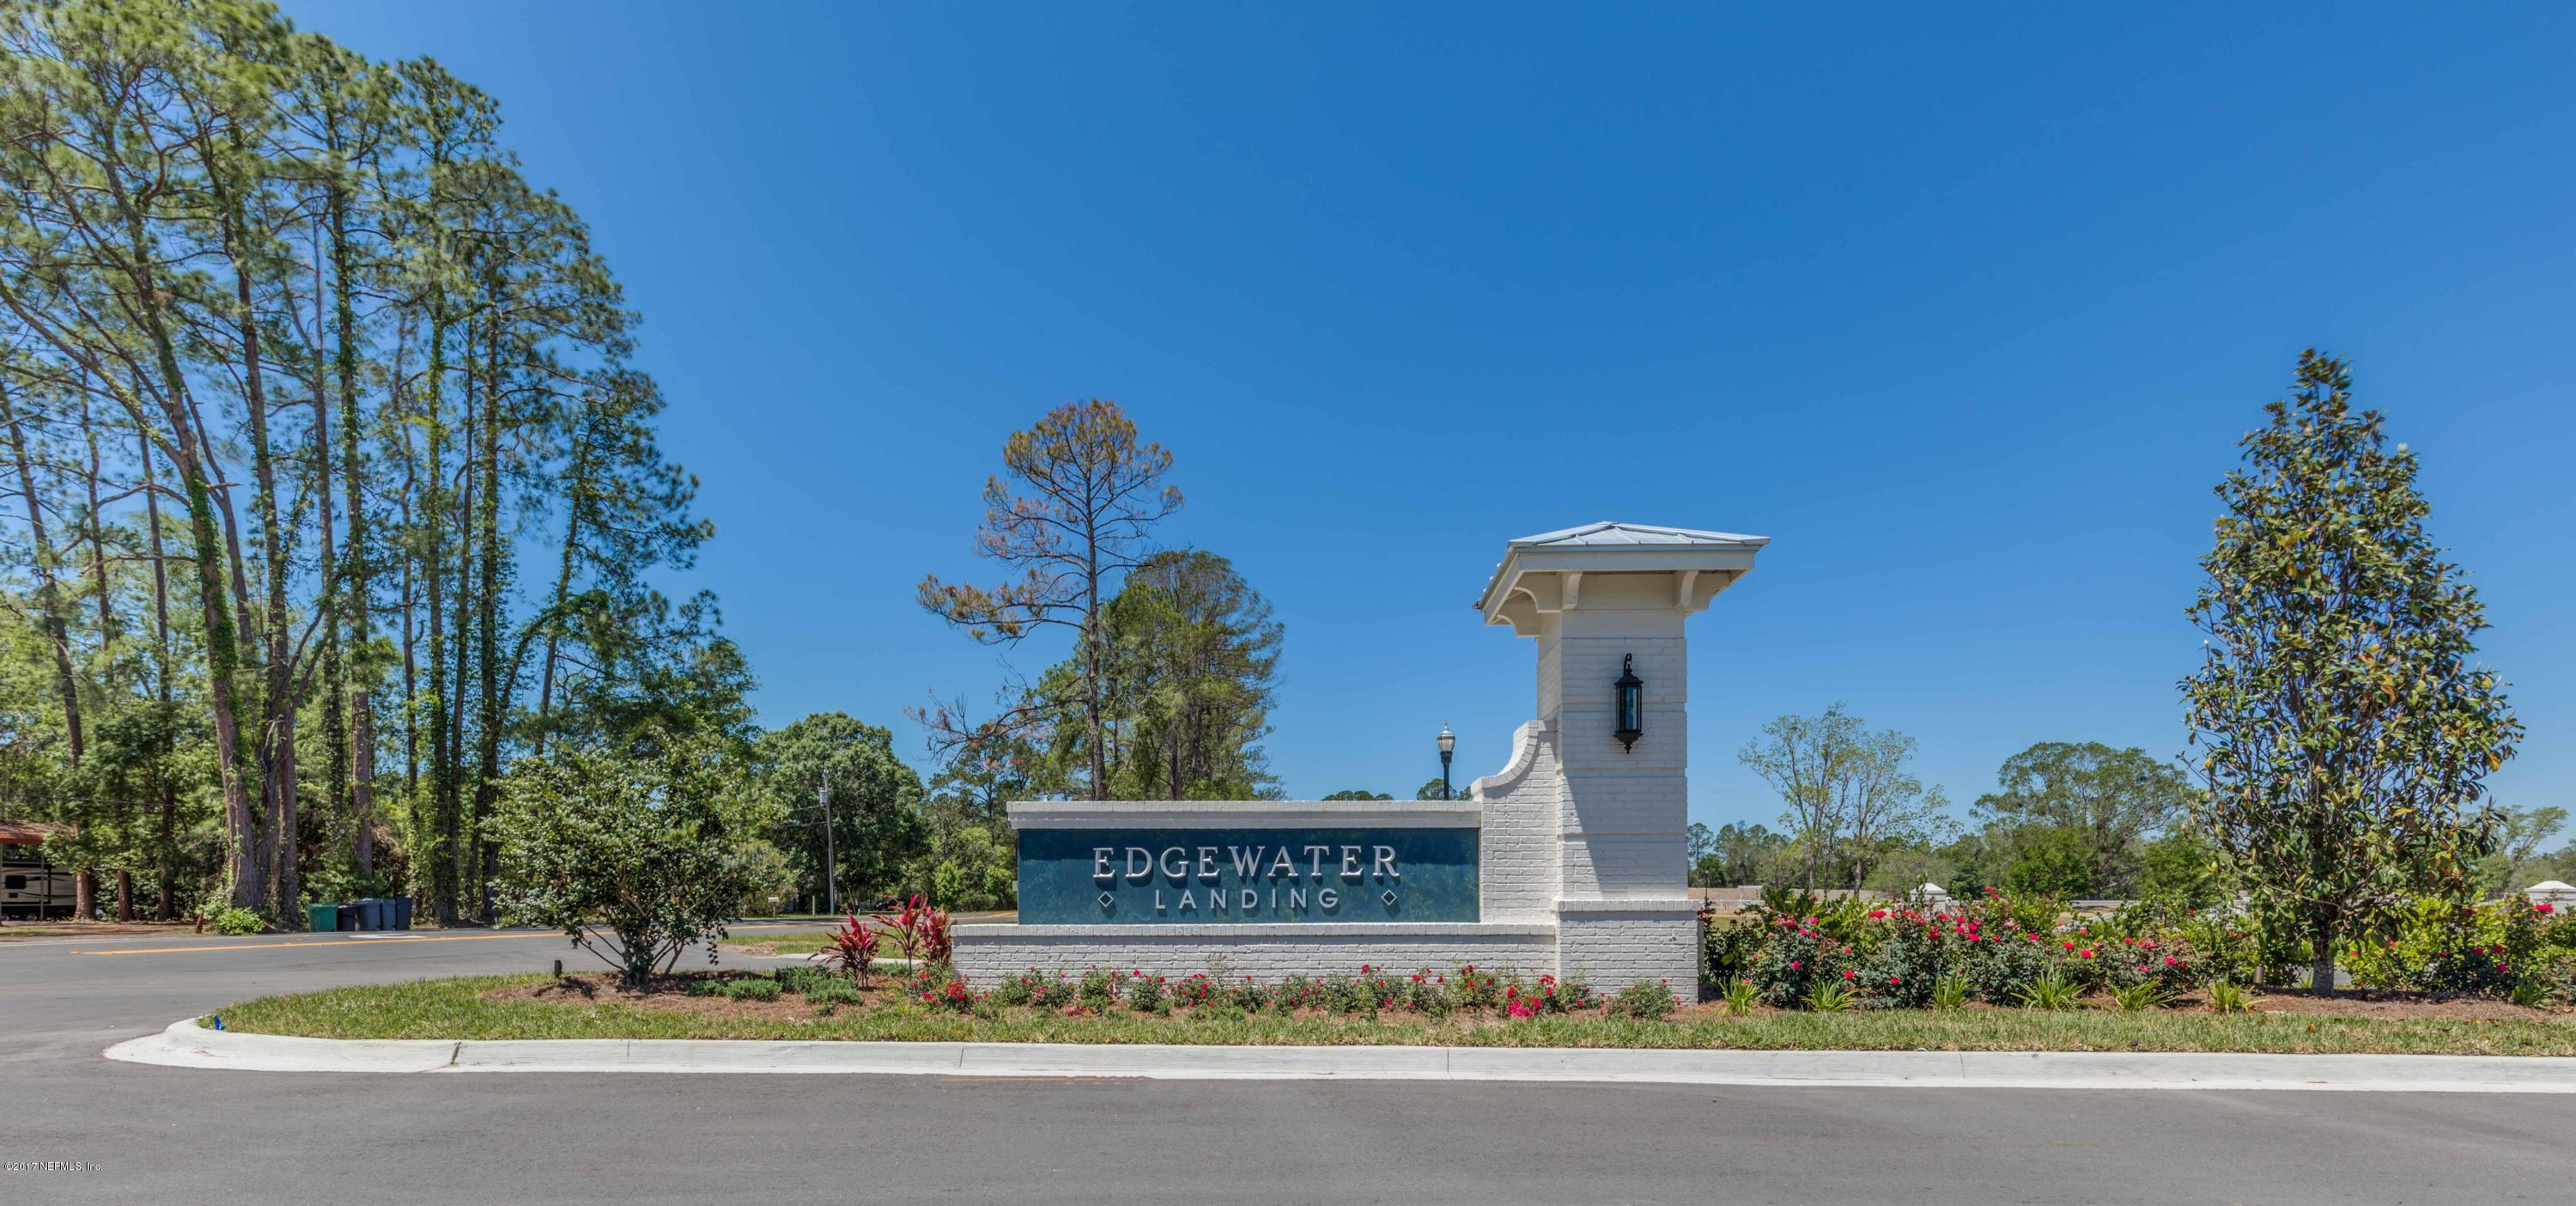 3388 SOUTHERN OAKS, GREEN COVE SPRINGS, FLORIDA 32043, 4 Bedrooms Bedrooms, ,3 BathroomsBathrooms,Residential,For sale,SOUTHERN OAKS,1059859